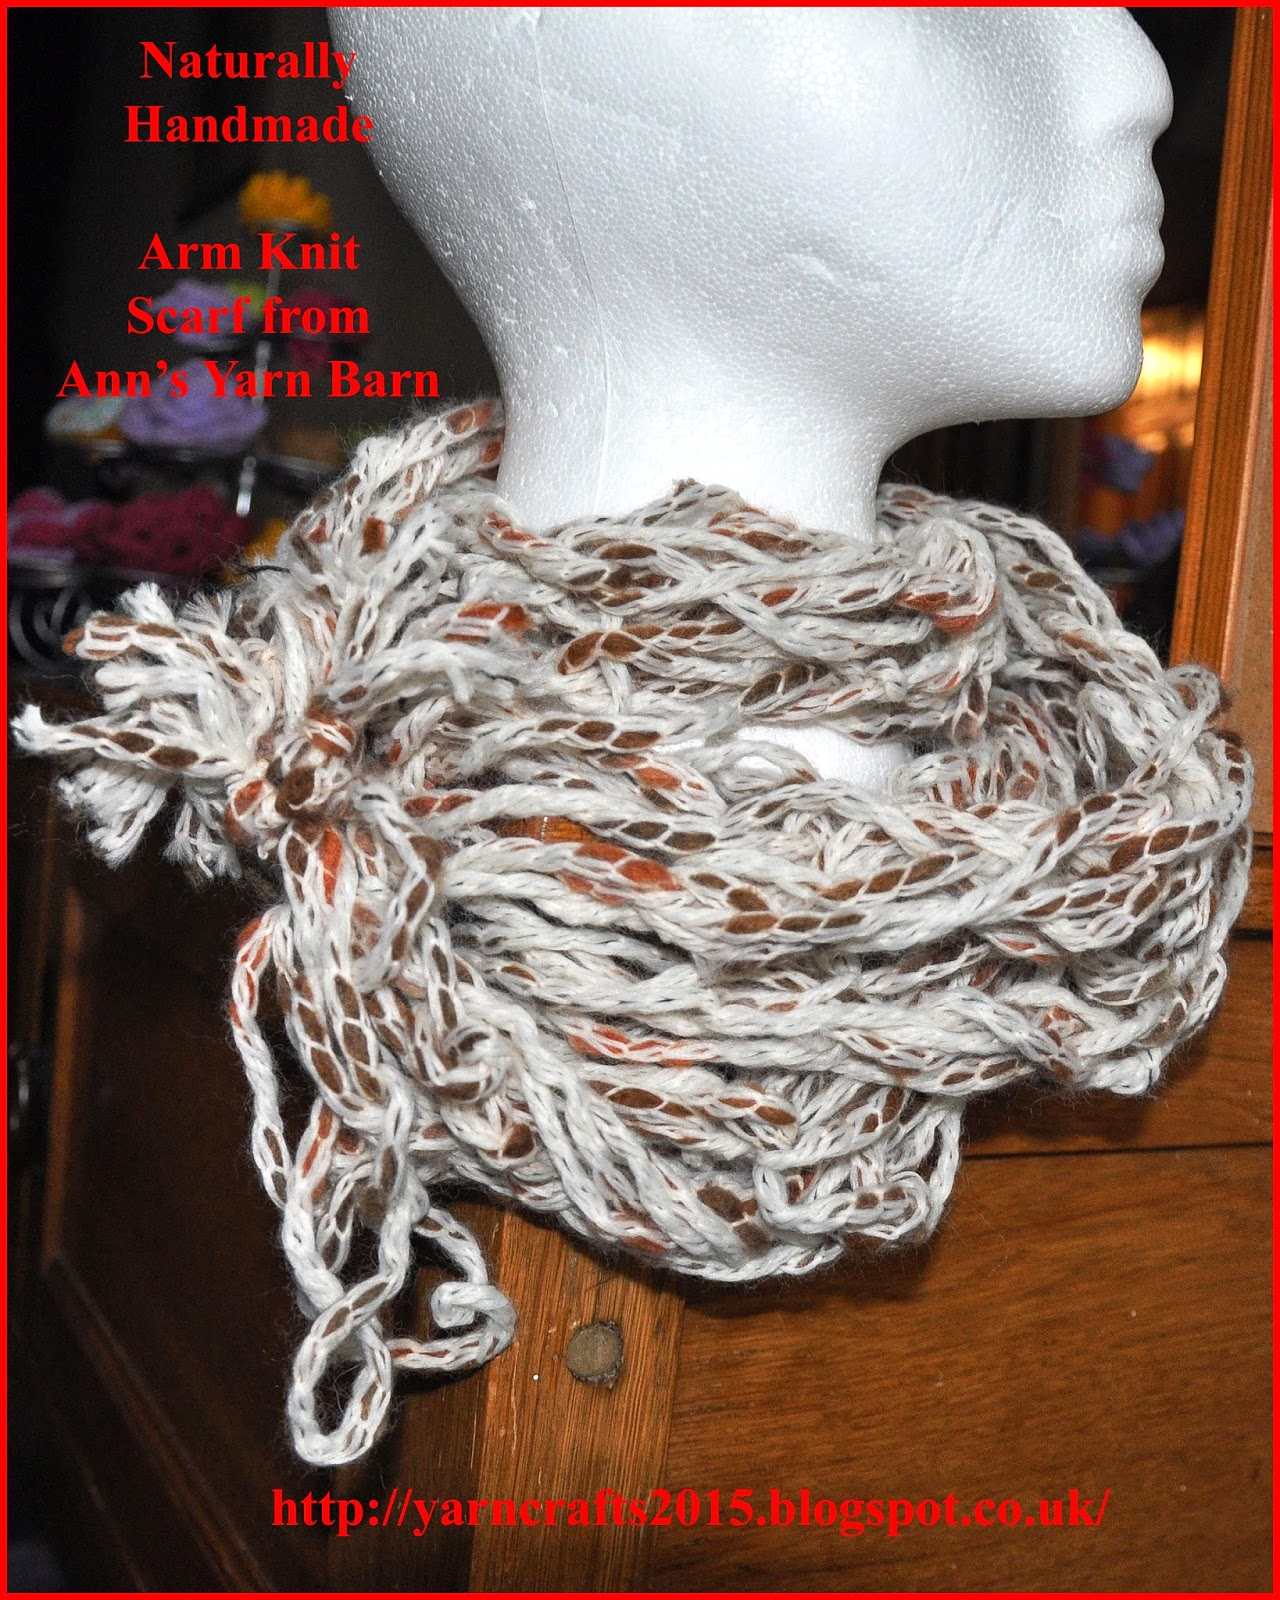 arm knitting scarf on manikin head